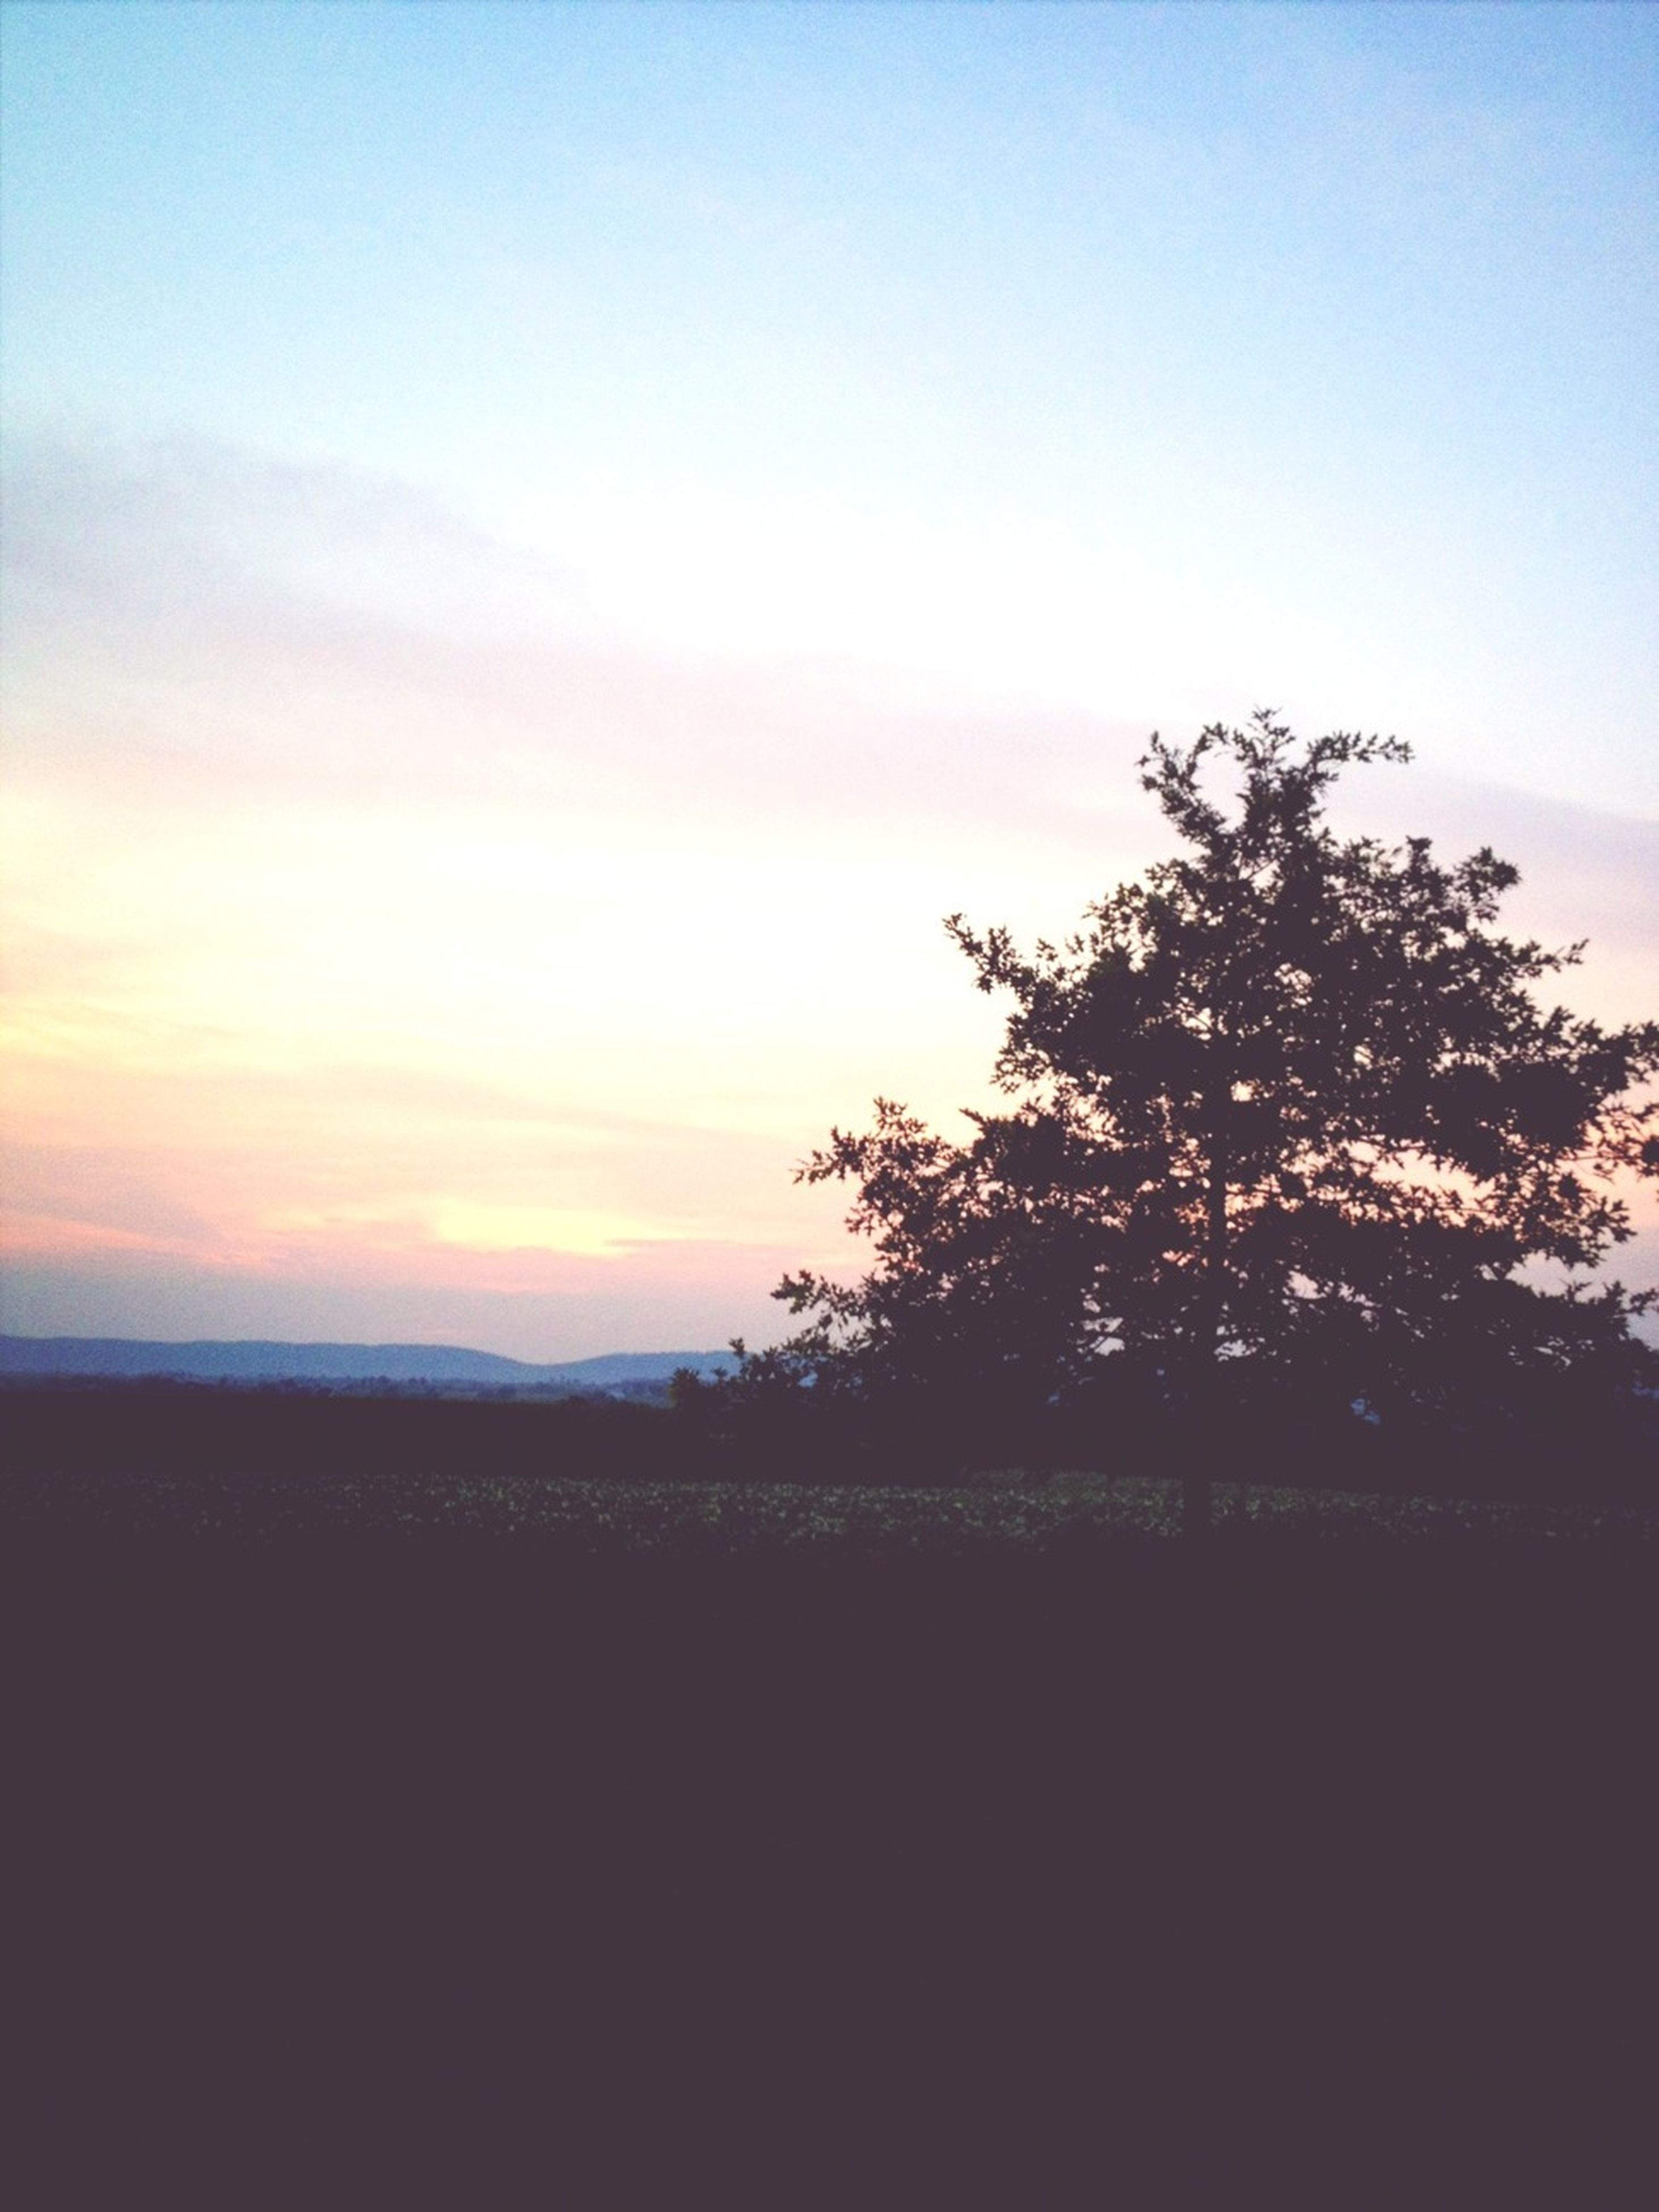 silhouette, sunset, tranquil scene, tranquility, tree, landscape, scenics, sky, beauty in nature, copy space, field, nature, idyllic, dusk, clear sky, horizon over land, non-urban scene, outdoors, remote, no people